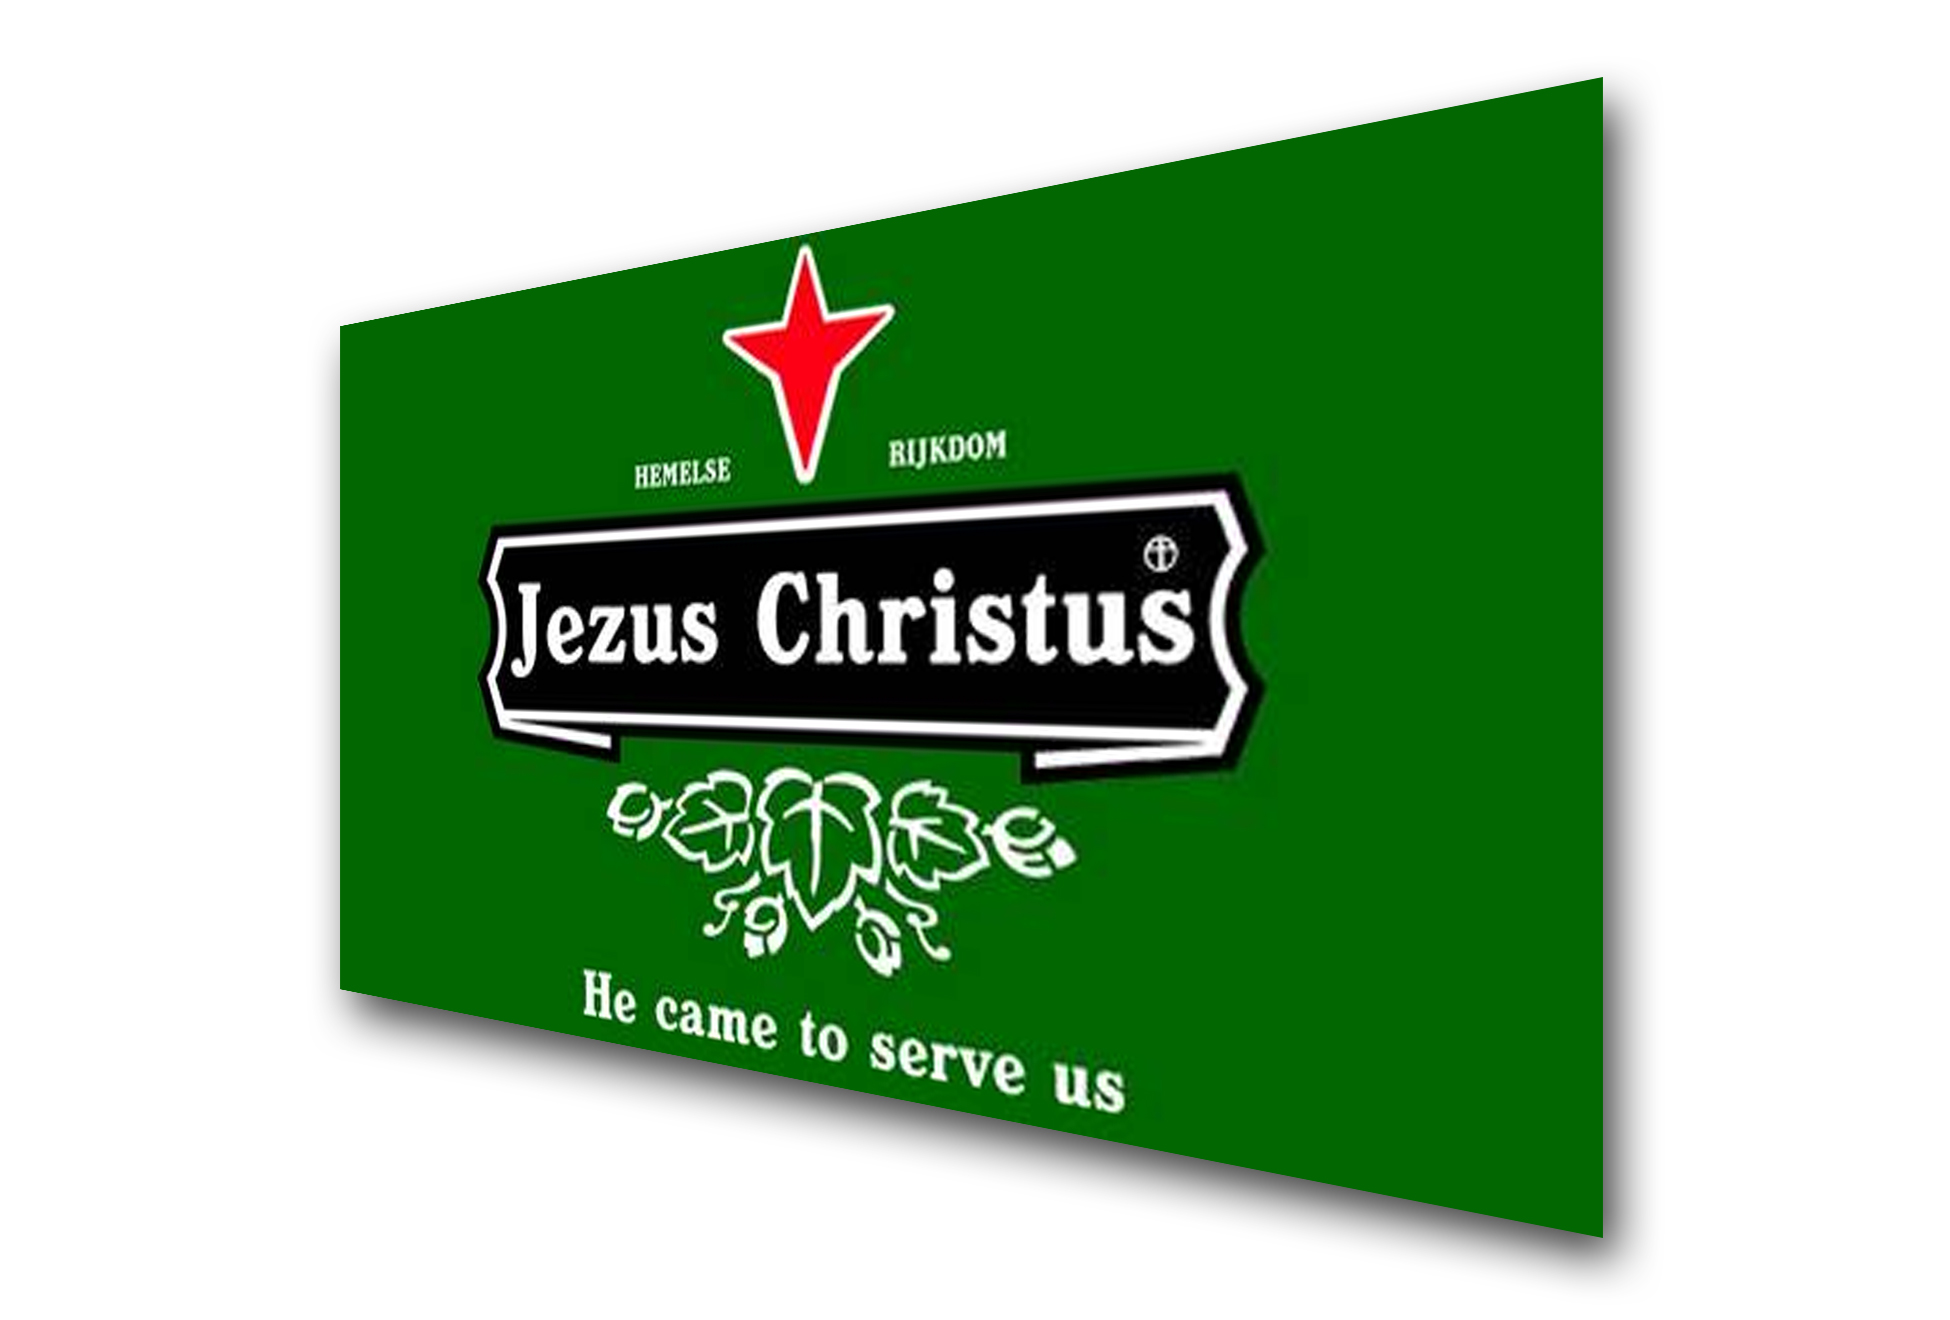 Jezus-Christus-he-came-to-serve-us-Heineken-evangelisatiemateriaal